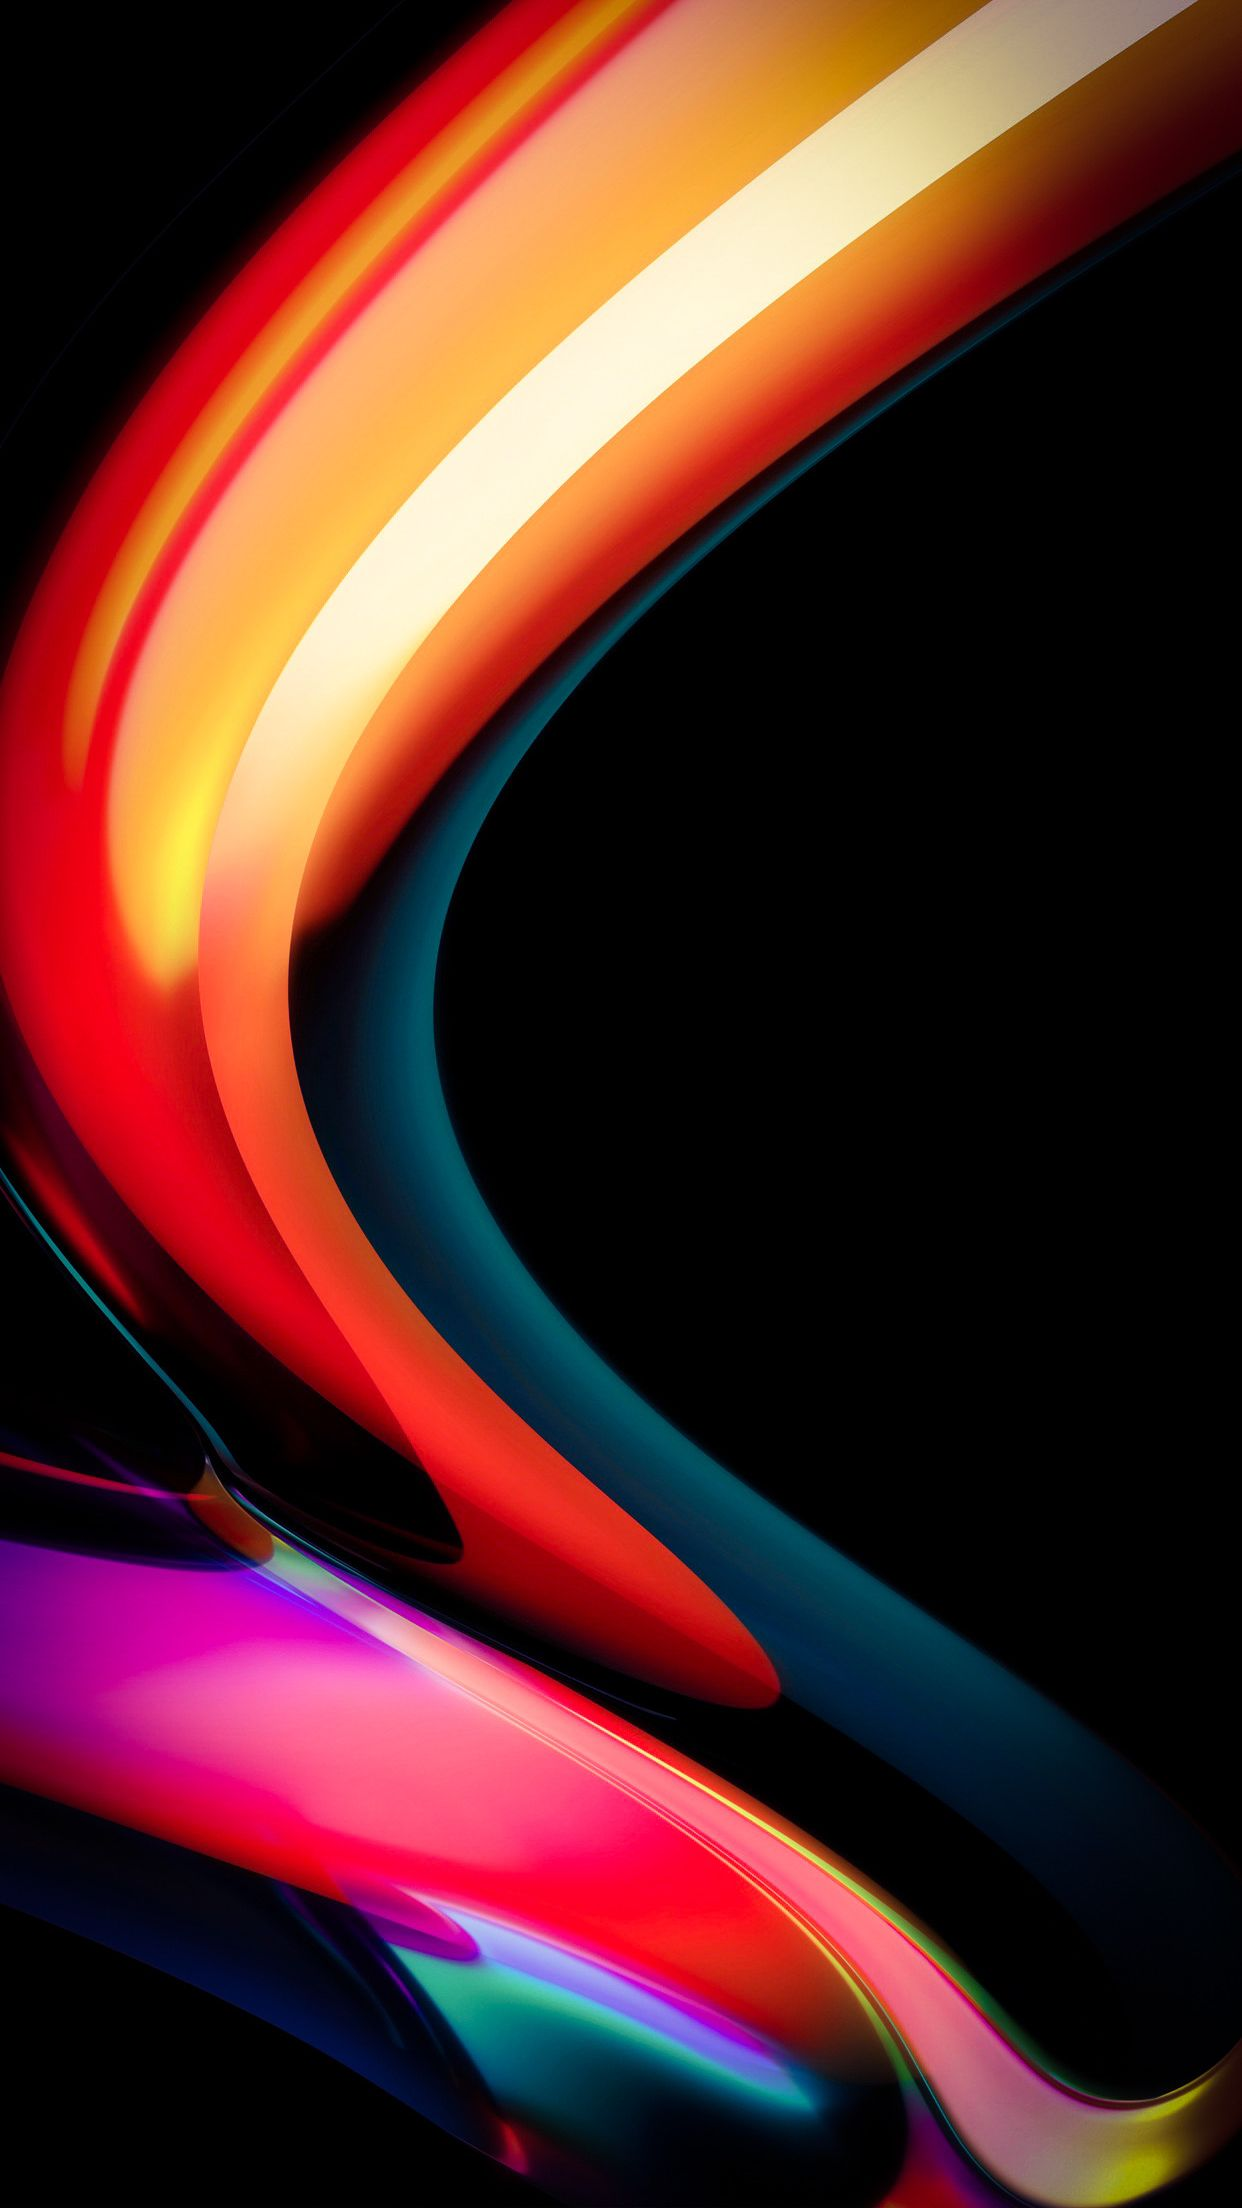 Iphone 12 Concept V5 By Ar72014 On Twitter In 2020 Iphone Wallpaper Stock Wallpaper Homescreen Wallpaper